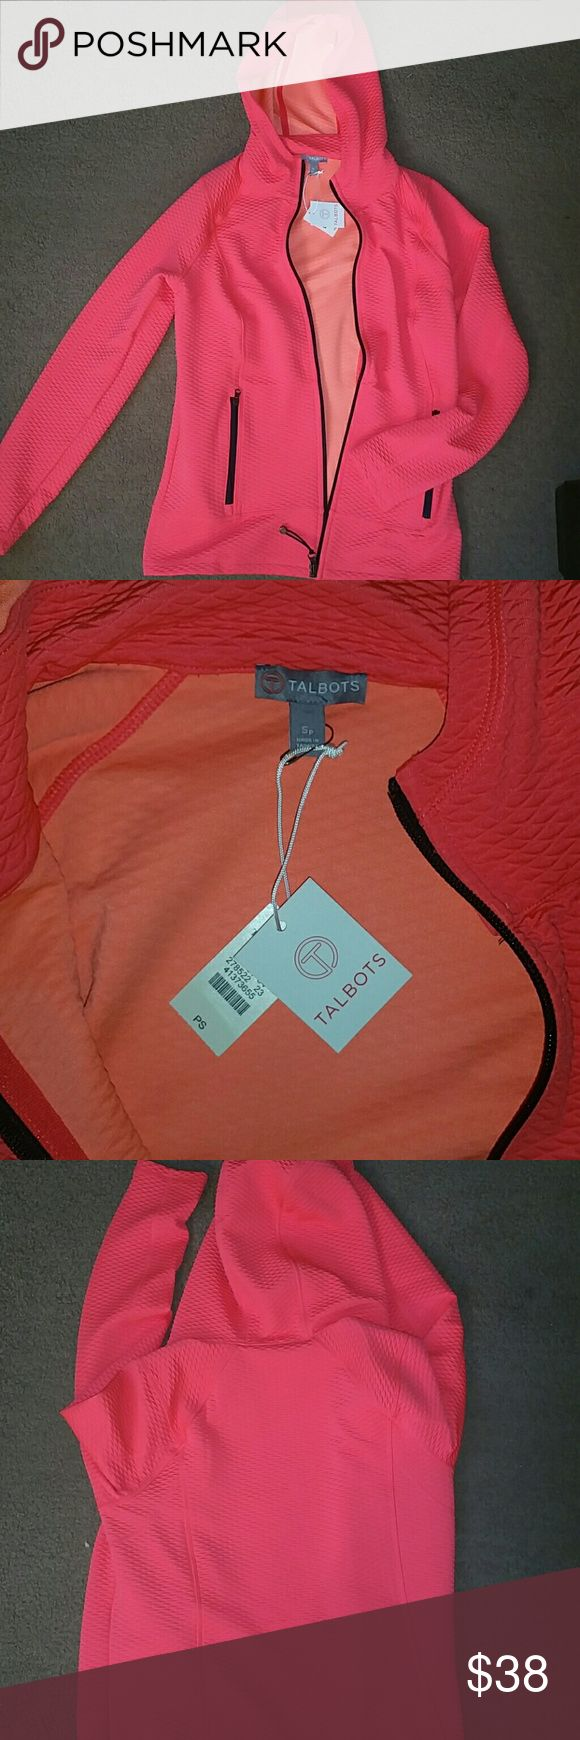 Talbots petites size small active jacket NWT Talbots petites size small active jacket. Peach/bright pink in color. Full zip-up with hood. Zip pockets. New with tags. Talbots Tops Sweatshirts & Hoodies